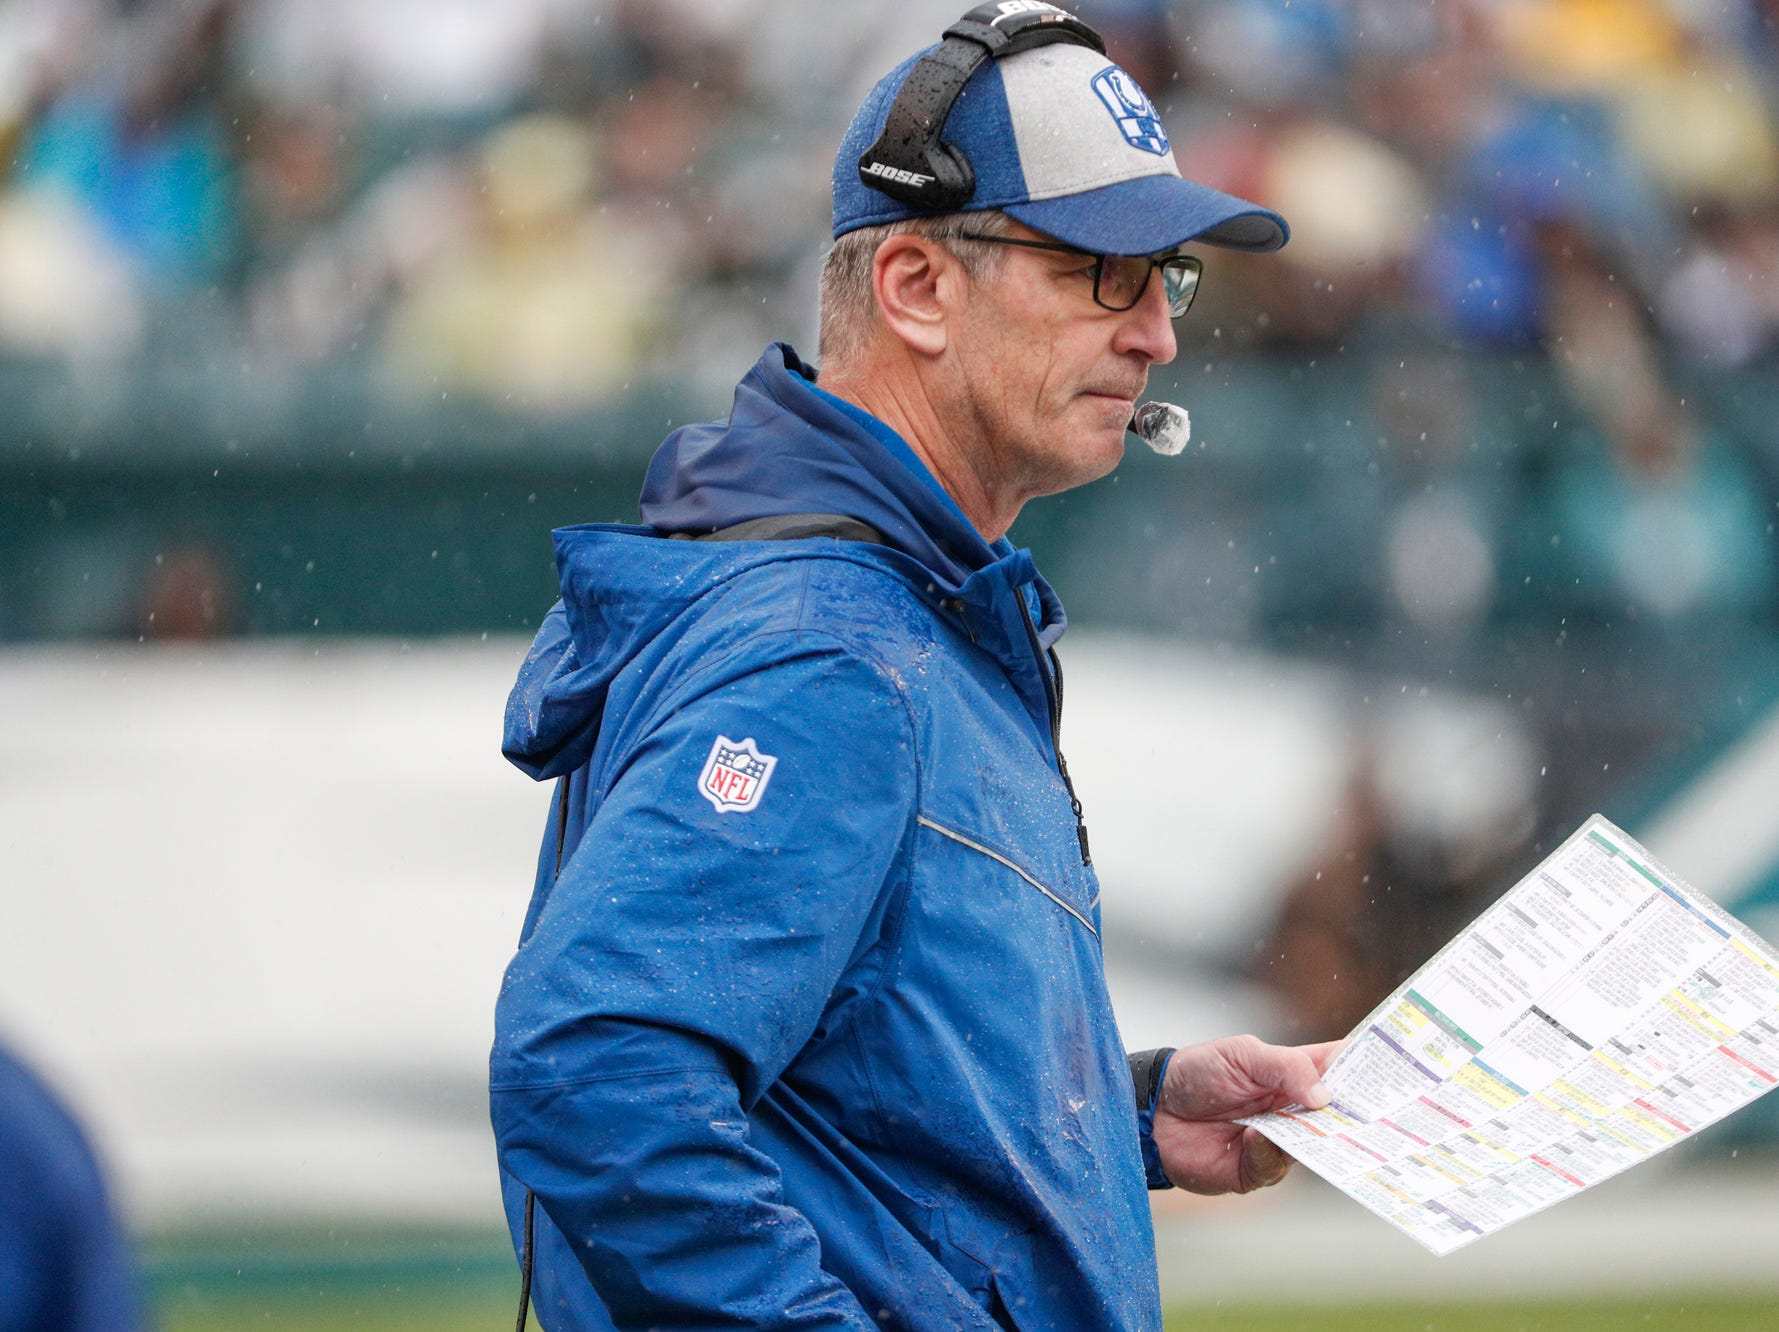 Indianapolis Colts head coach Frank Reich on the sideline during the game against the Philadelphia Eagles at Lincoln Financial Field in Philadelphia, on Sunday, Sept. 23, 2018.